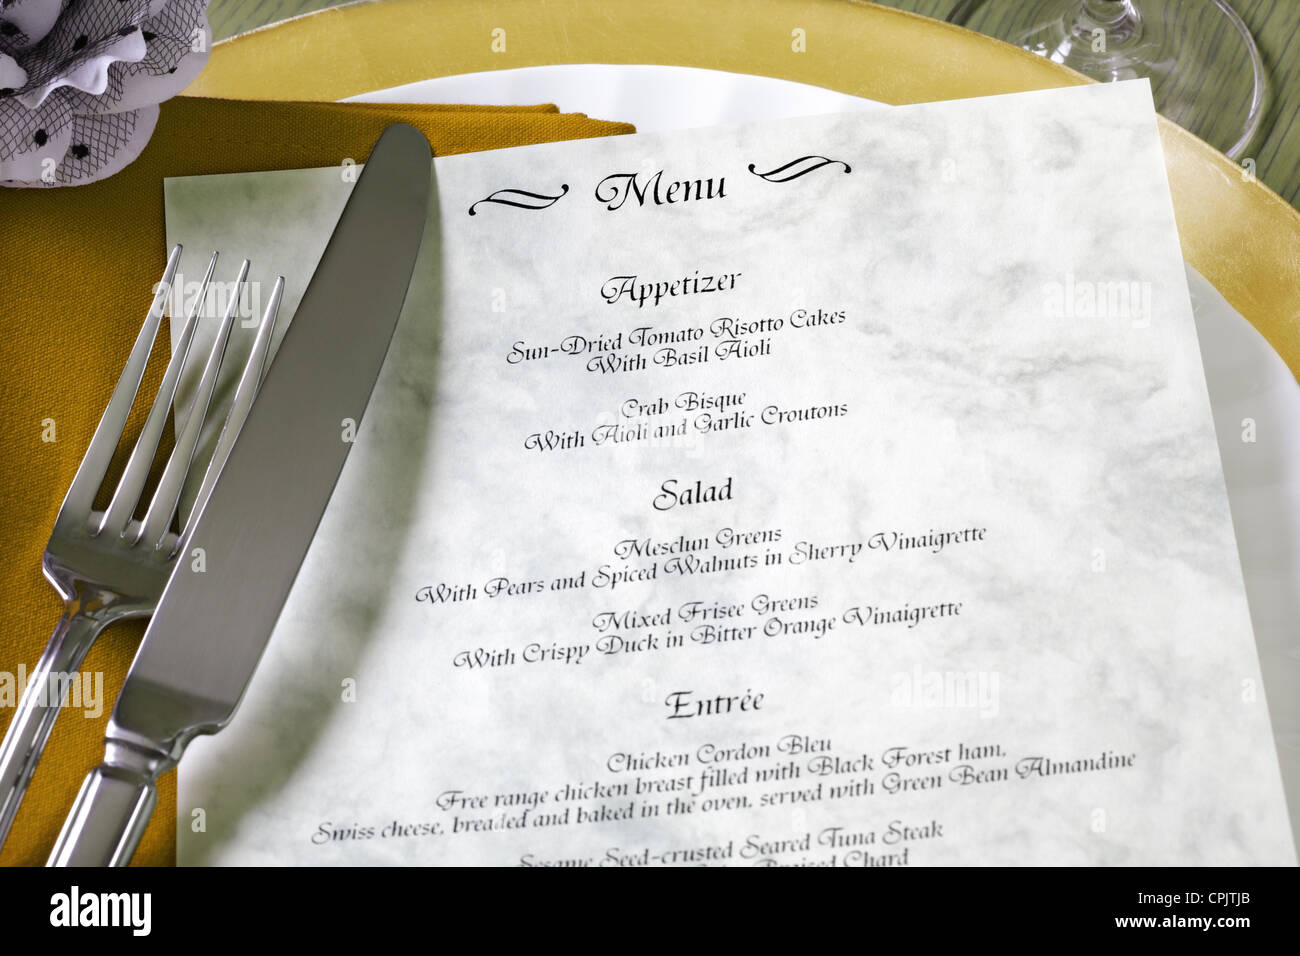 Menu and cutlery on restaurant table - Stock Image